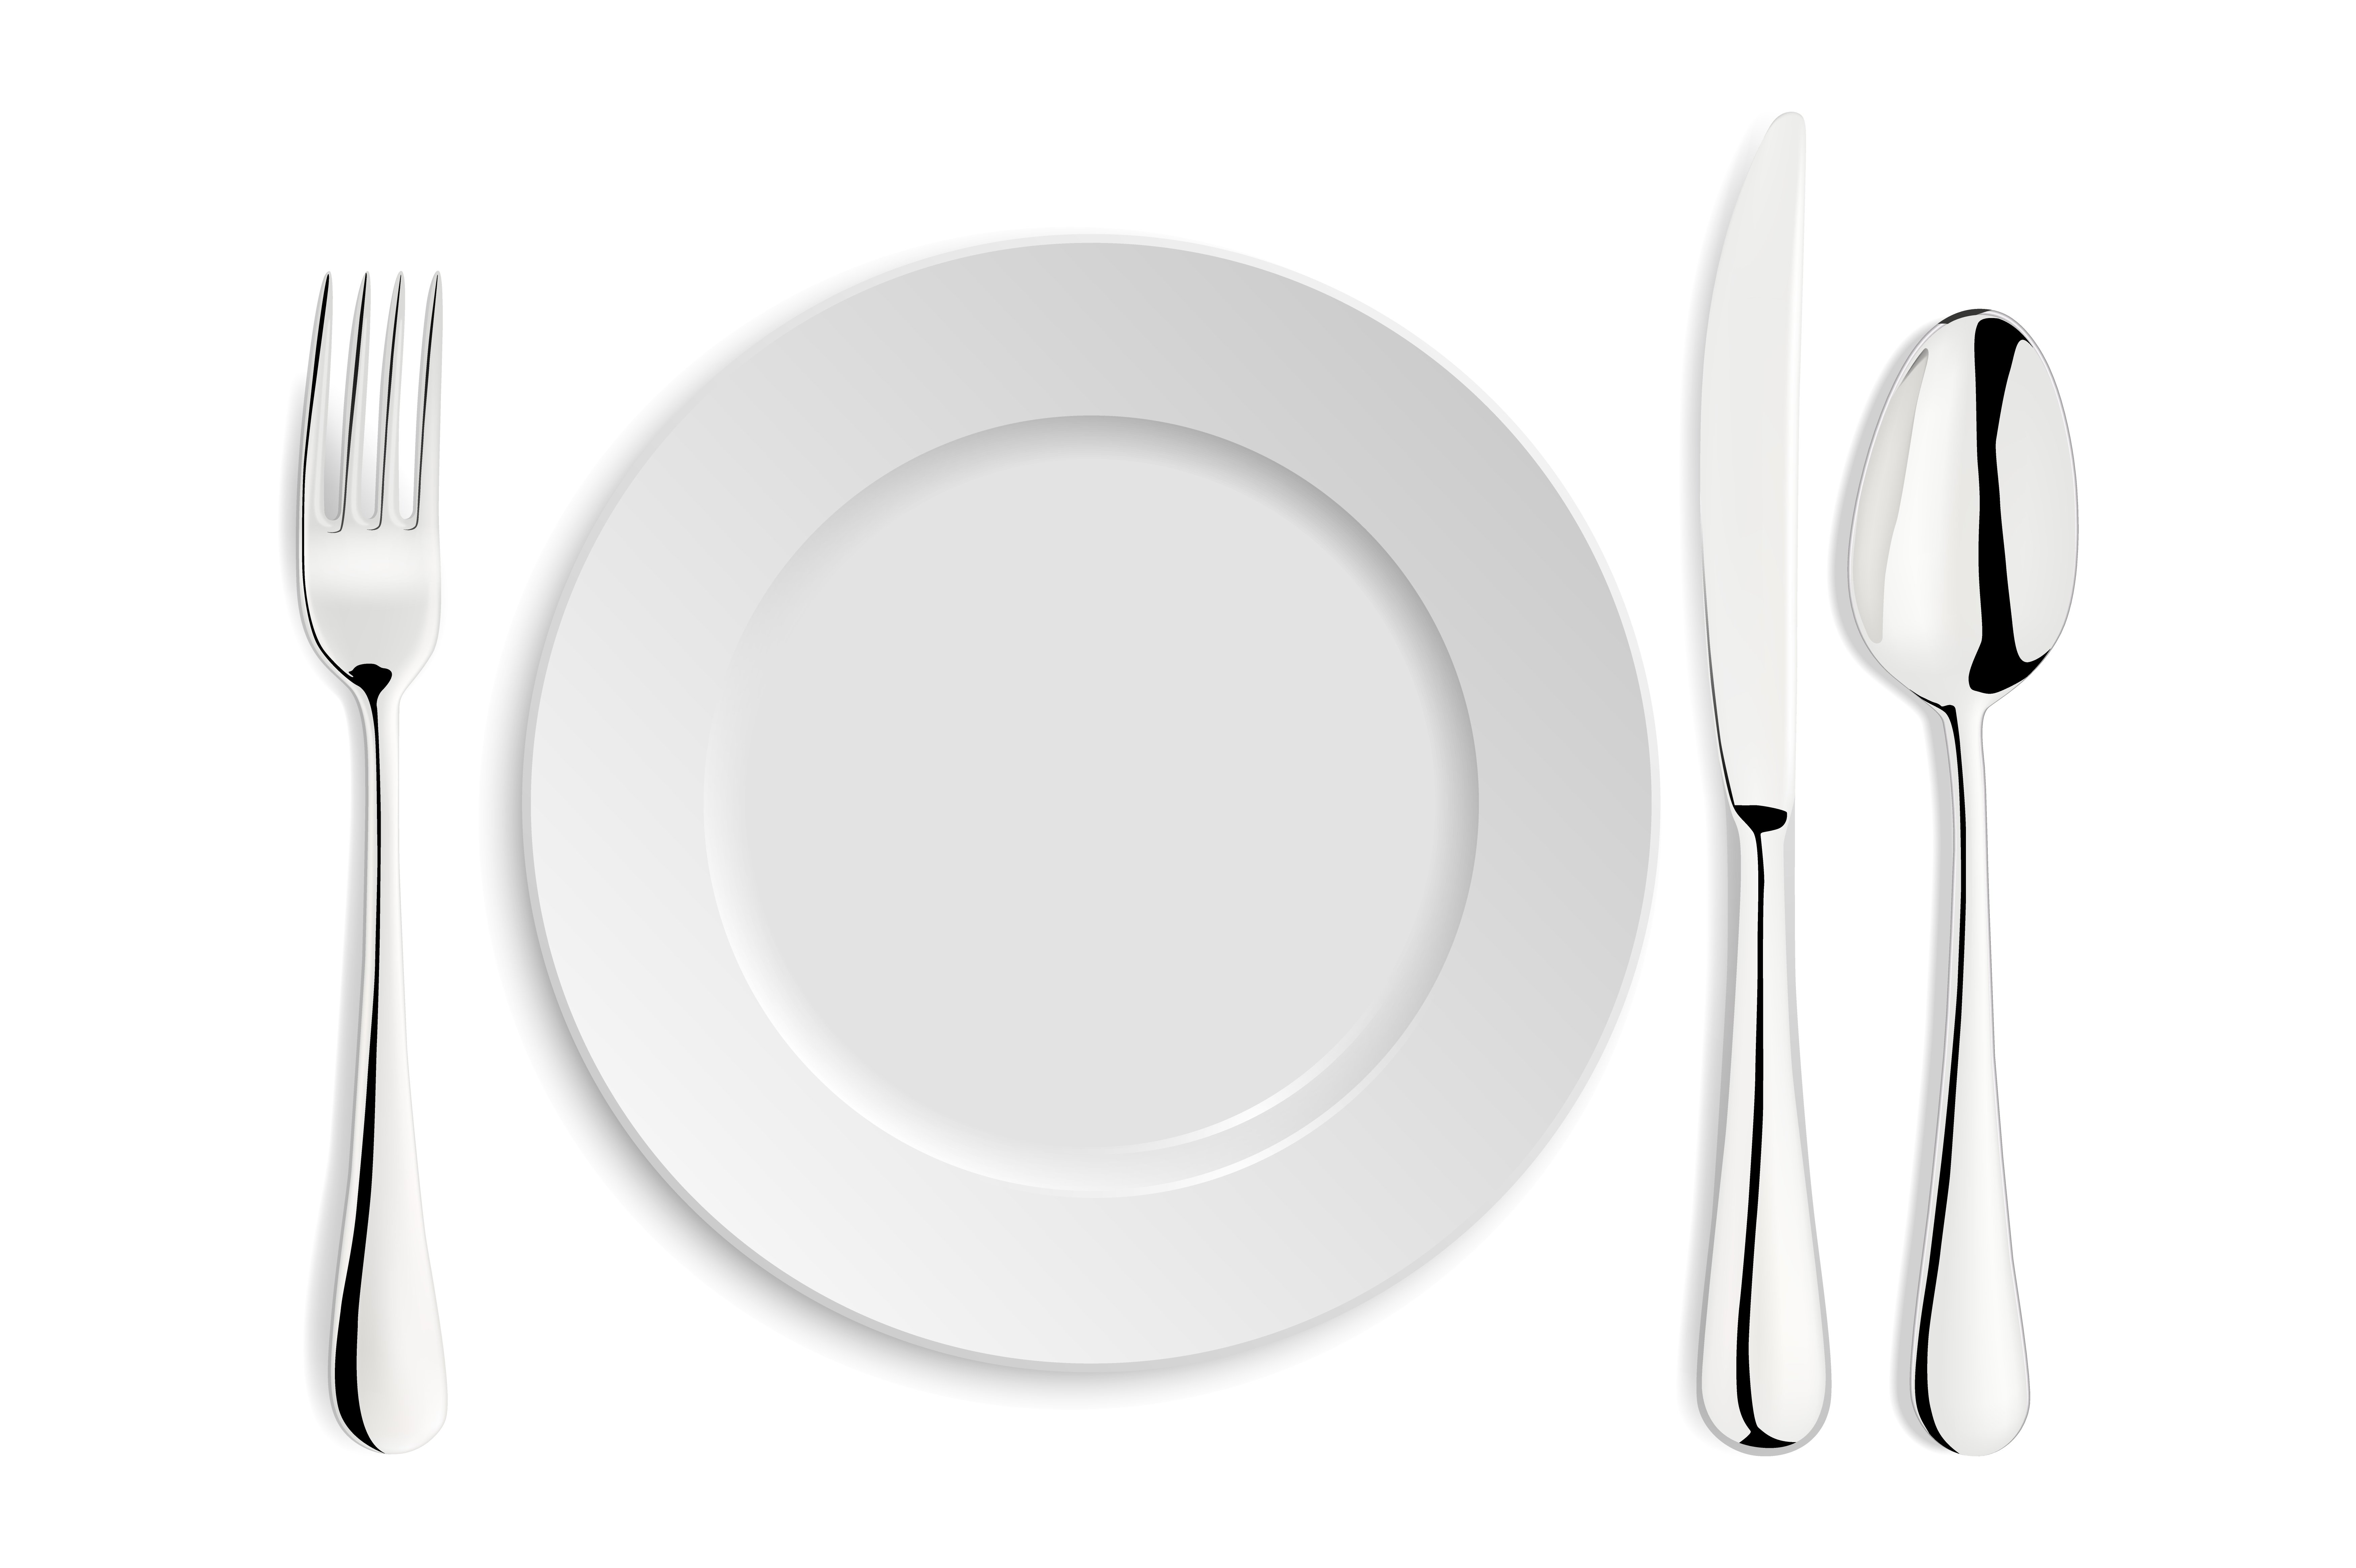 how to put knife and fork